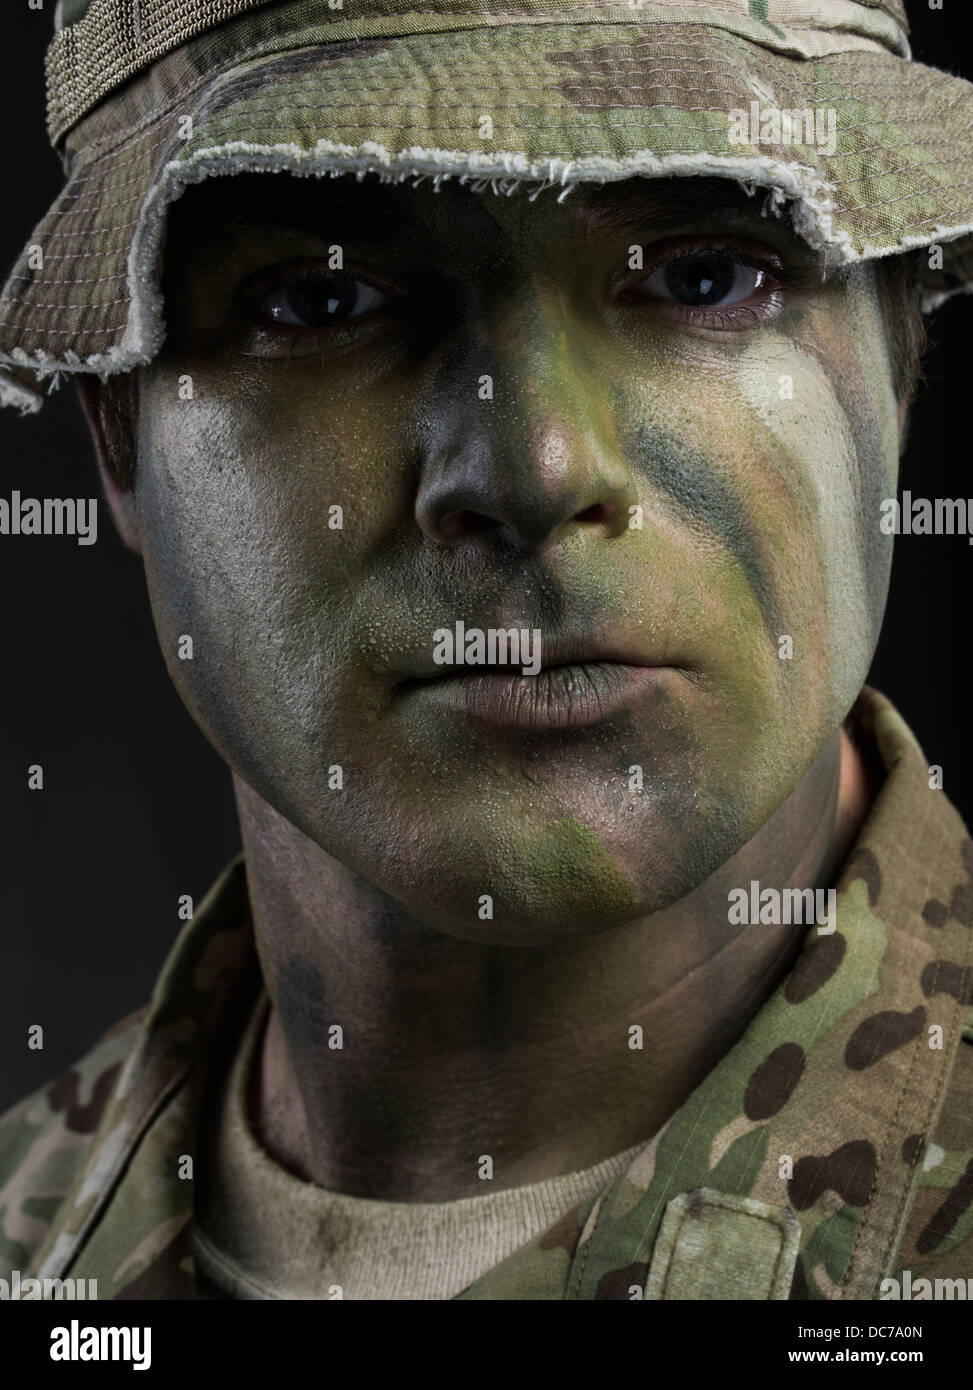 Portrait of a U.S. Army Special Forces Green Beret soldier Stock Photo